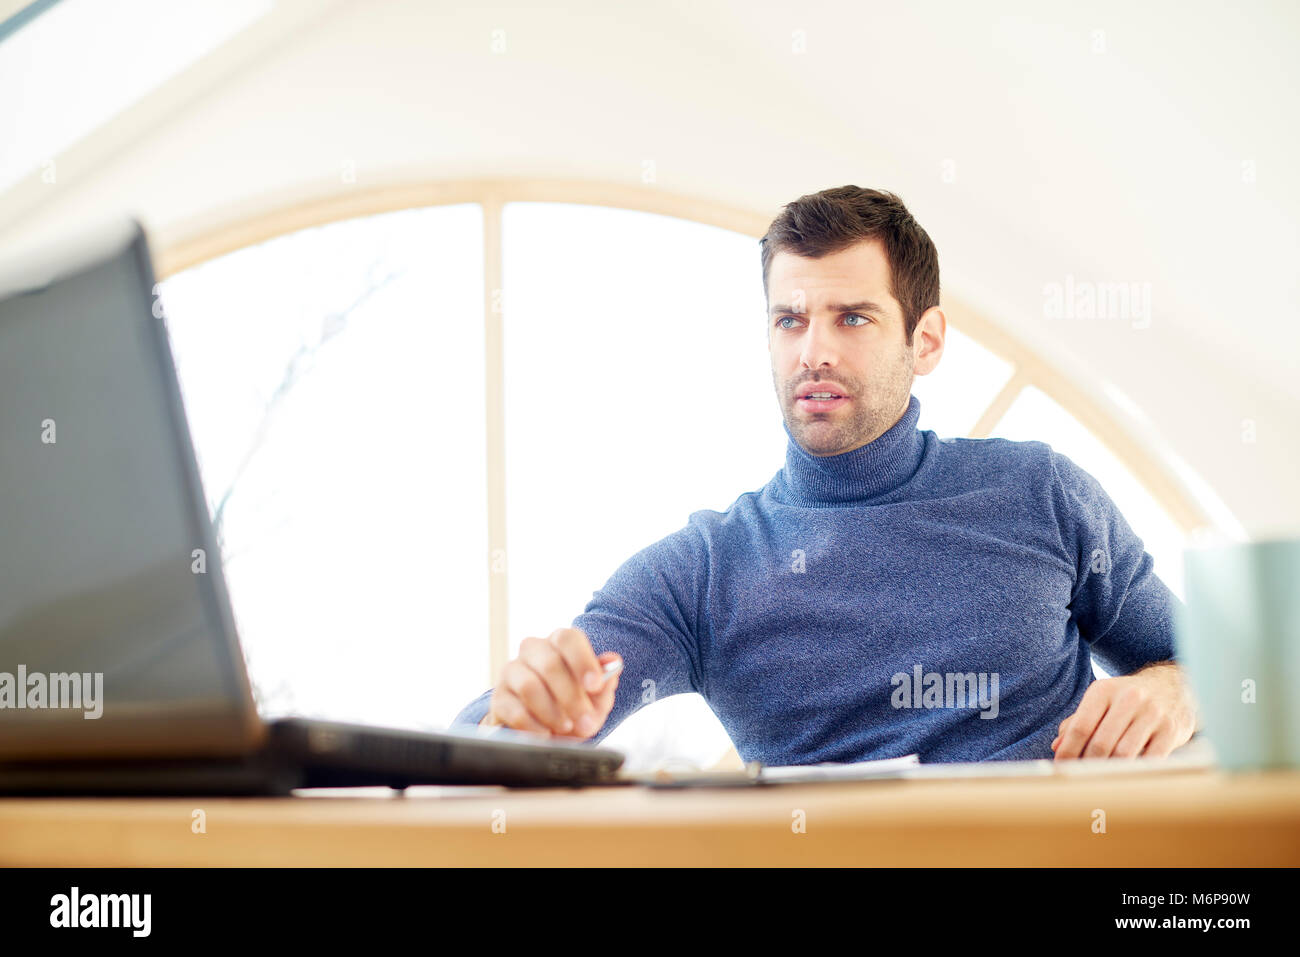 Portrait of casual young man wearing turtleneck sweater and looking thoughtul while working on laptop at home. Home - Stock Image